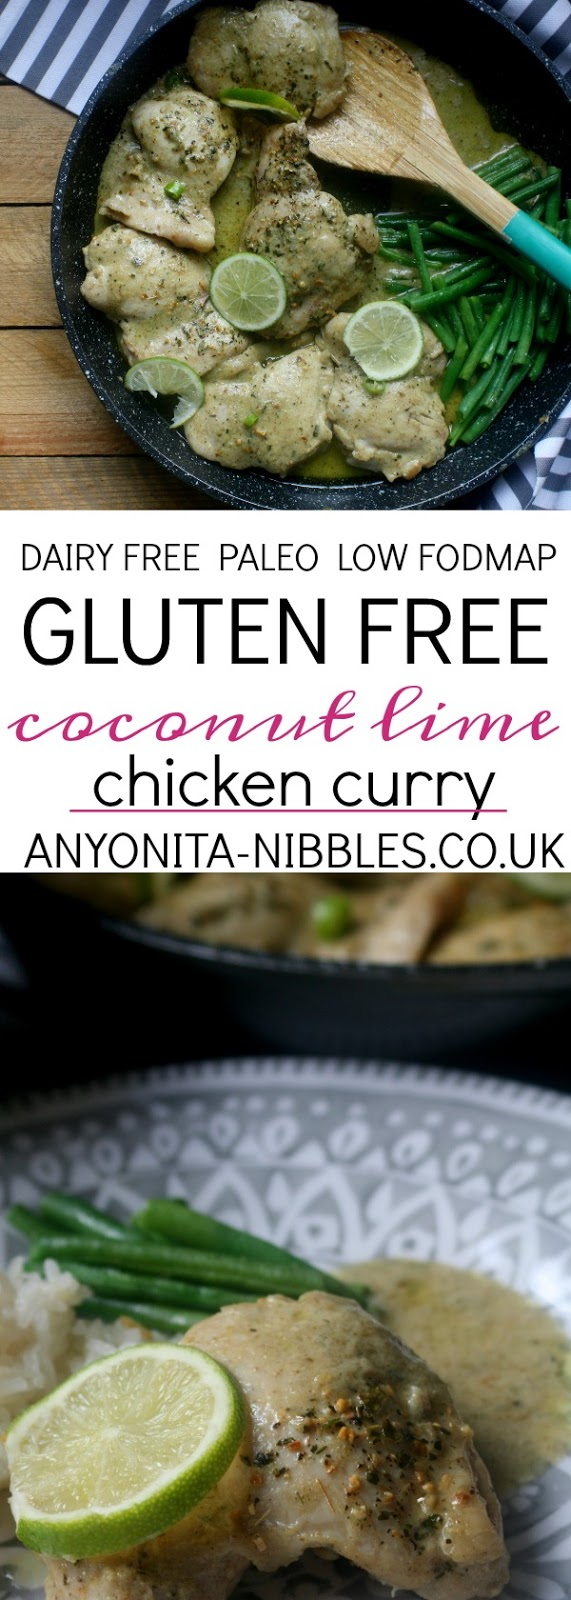 This quick chicken curry recipe is dairy free, gluten free, paleo and low fodmap!